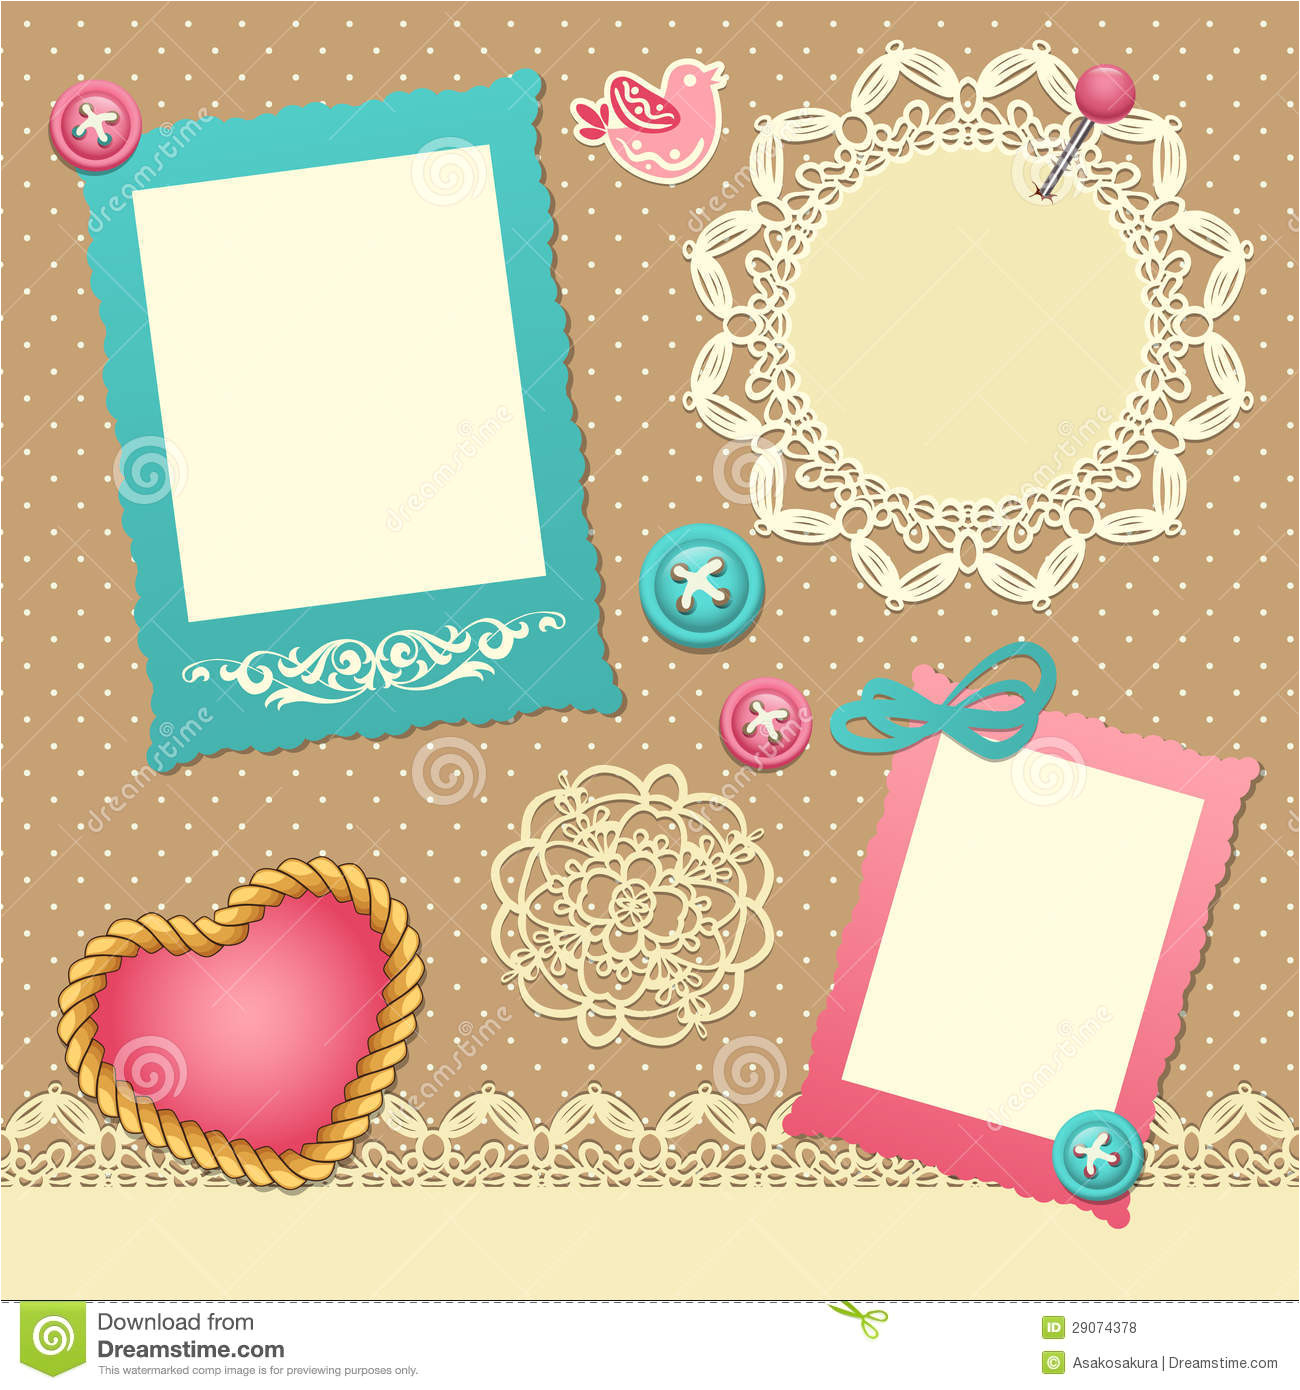 Free Scrapbooking Templates to Download Scrapbook Template Stock Vector Illustration Of Label